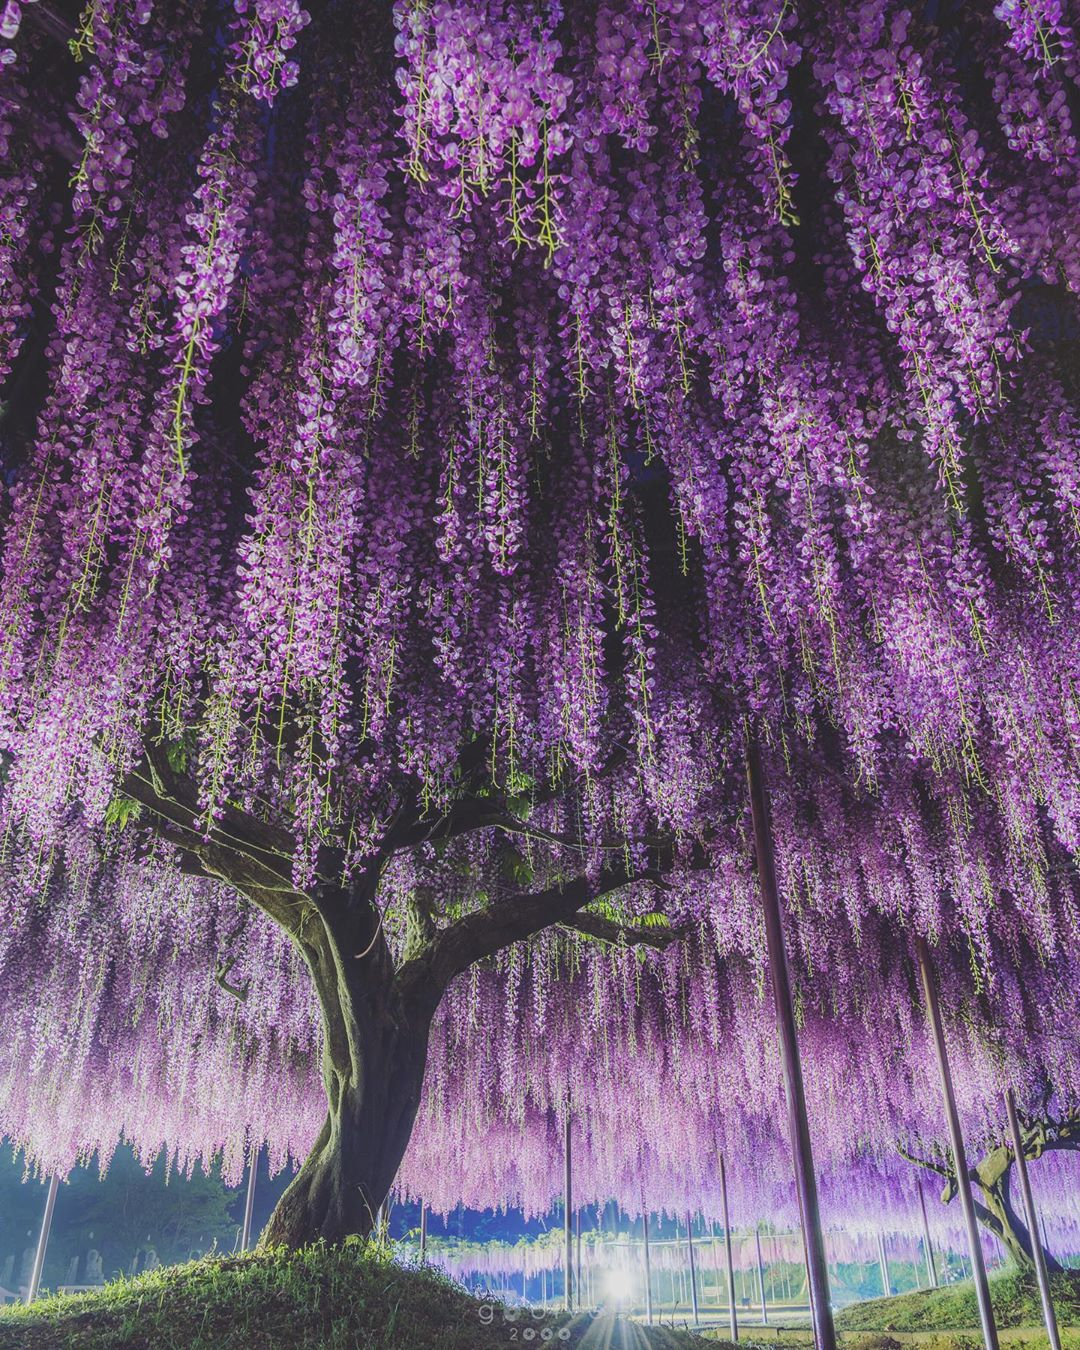 A stunning wisteria in the Hyògo Prefecture of Japan